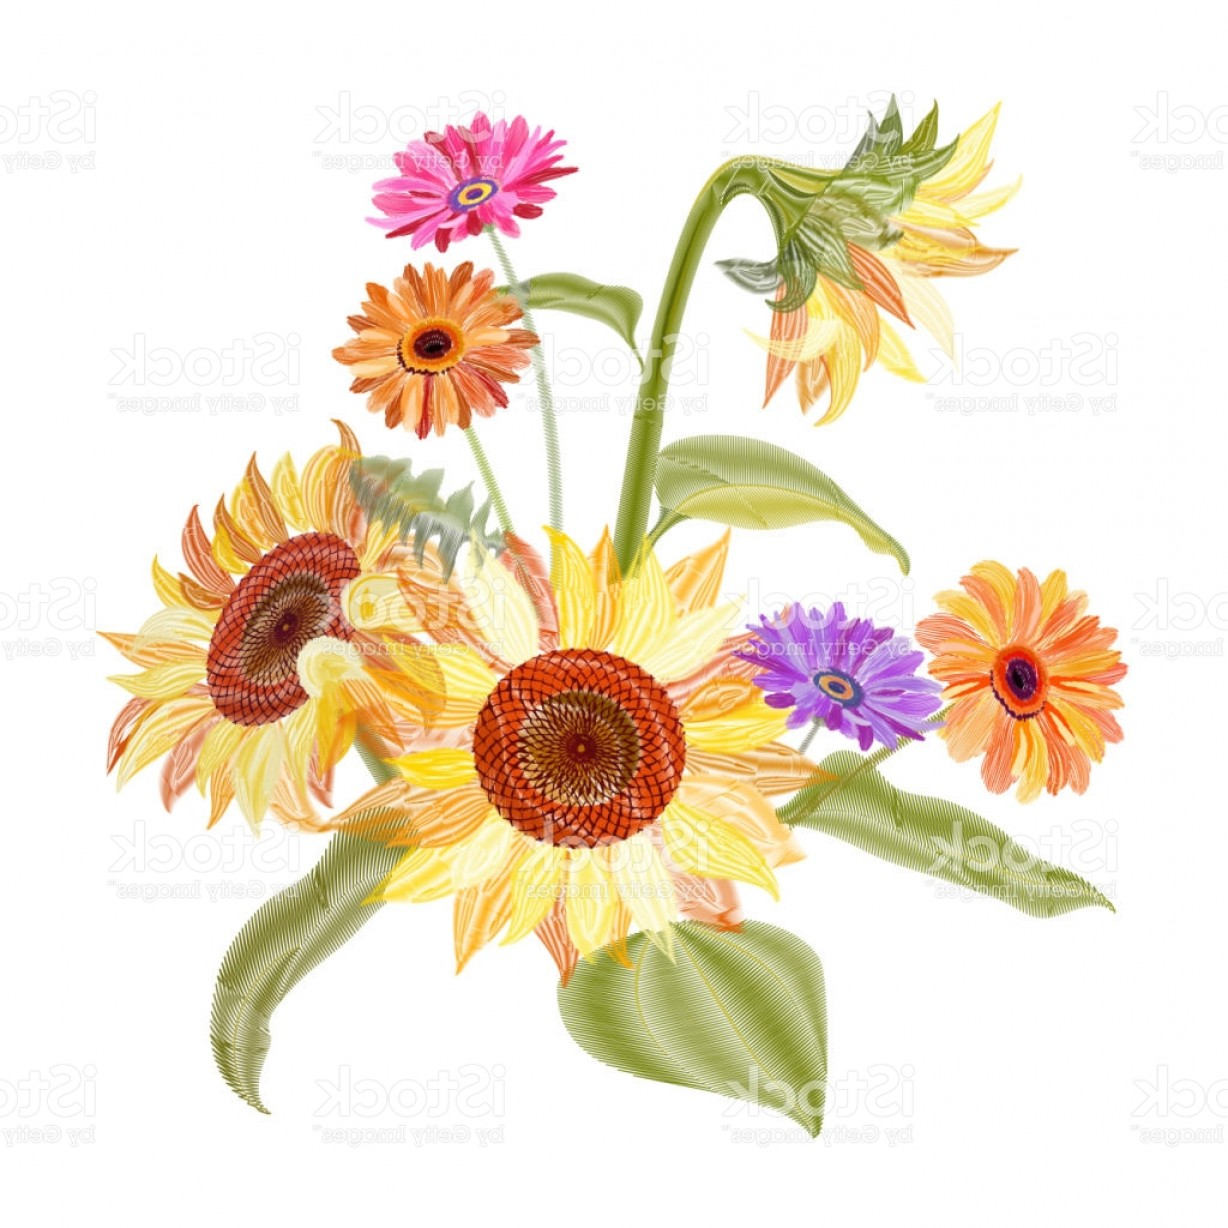 Orange Gerber Daisy Vector: Exclusive Yellow Orange Sunflower Gerbera Daisy Flowers Bud Green Leaves Embroidery On White Gm